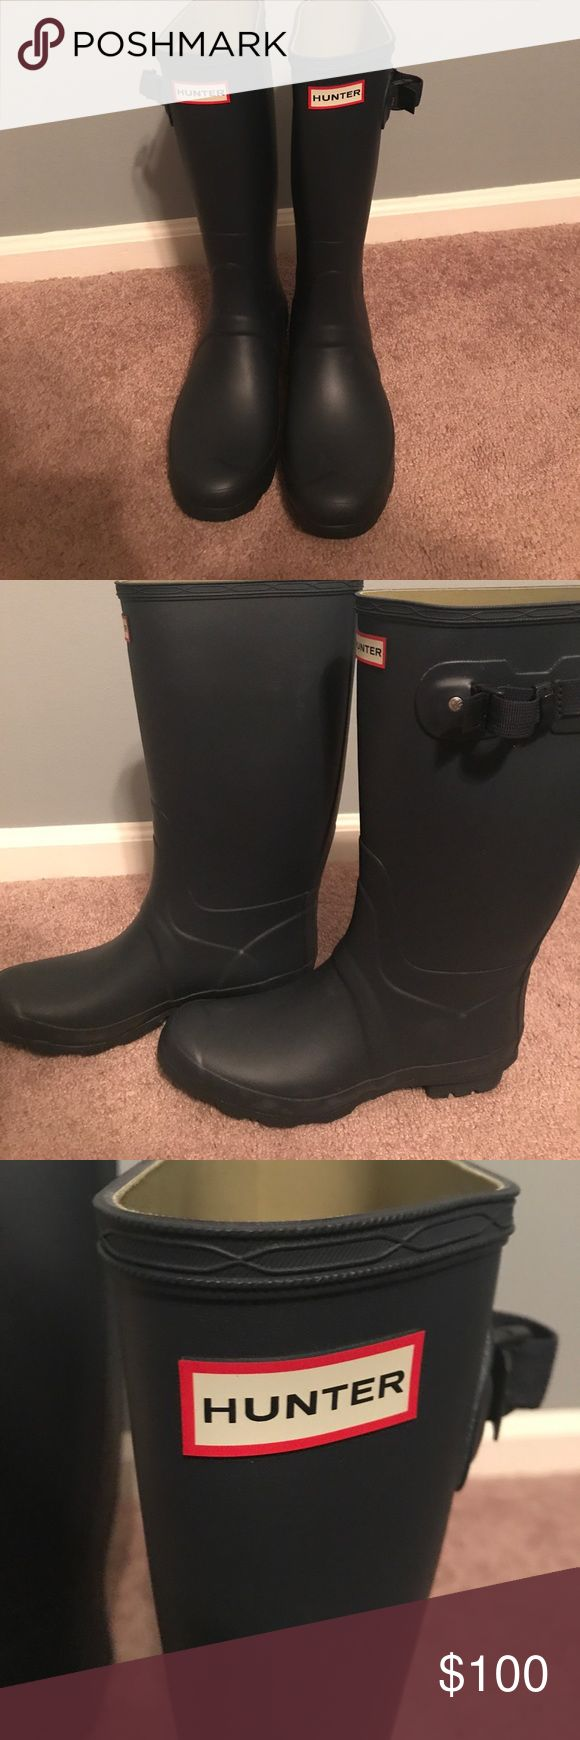 """Hunter """"Huntress"""" Rainboots Brand new! Bought on clearance and couldn't return and did not fit. Never worn, perfect condition. Navy blue. Hunter Boots Shoes Winter & Rain Boots"""